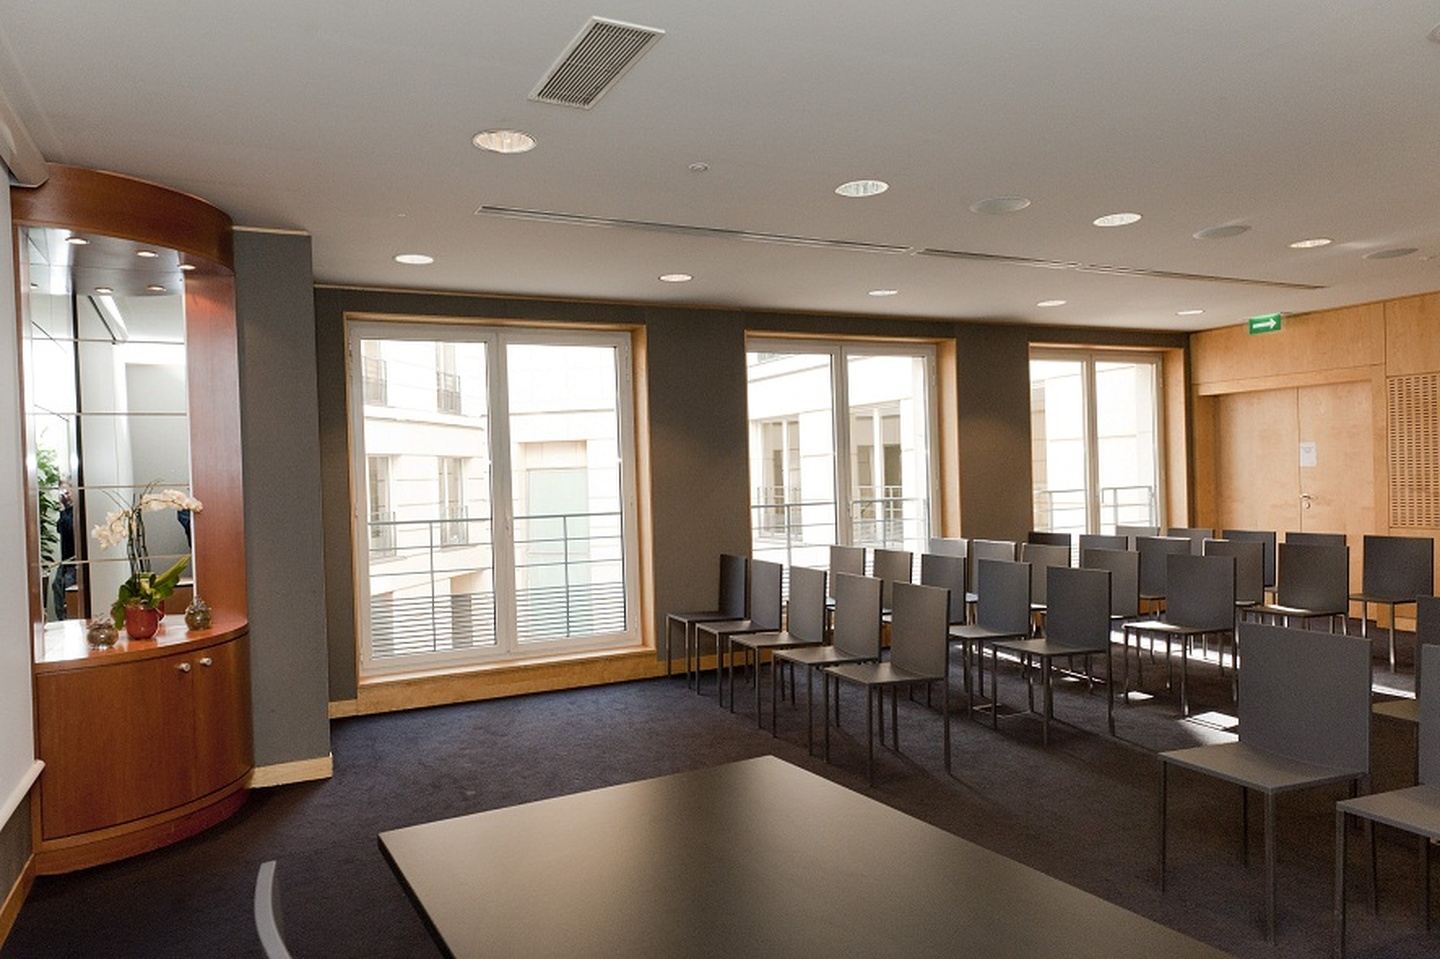 Paris corporate event venues Meeting room SERVCORP - Edouard VII Conference Center - Tokyo Meeting room image 1